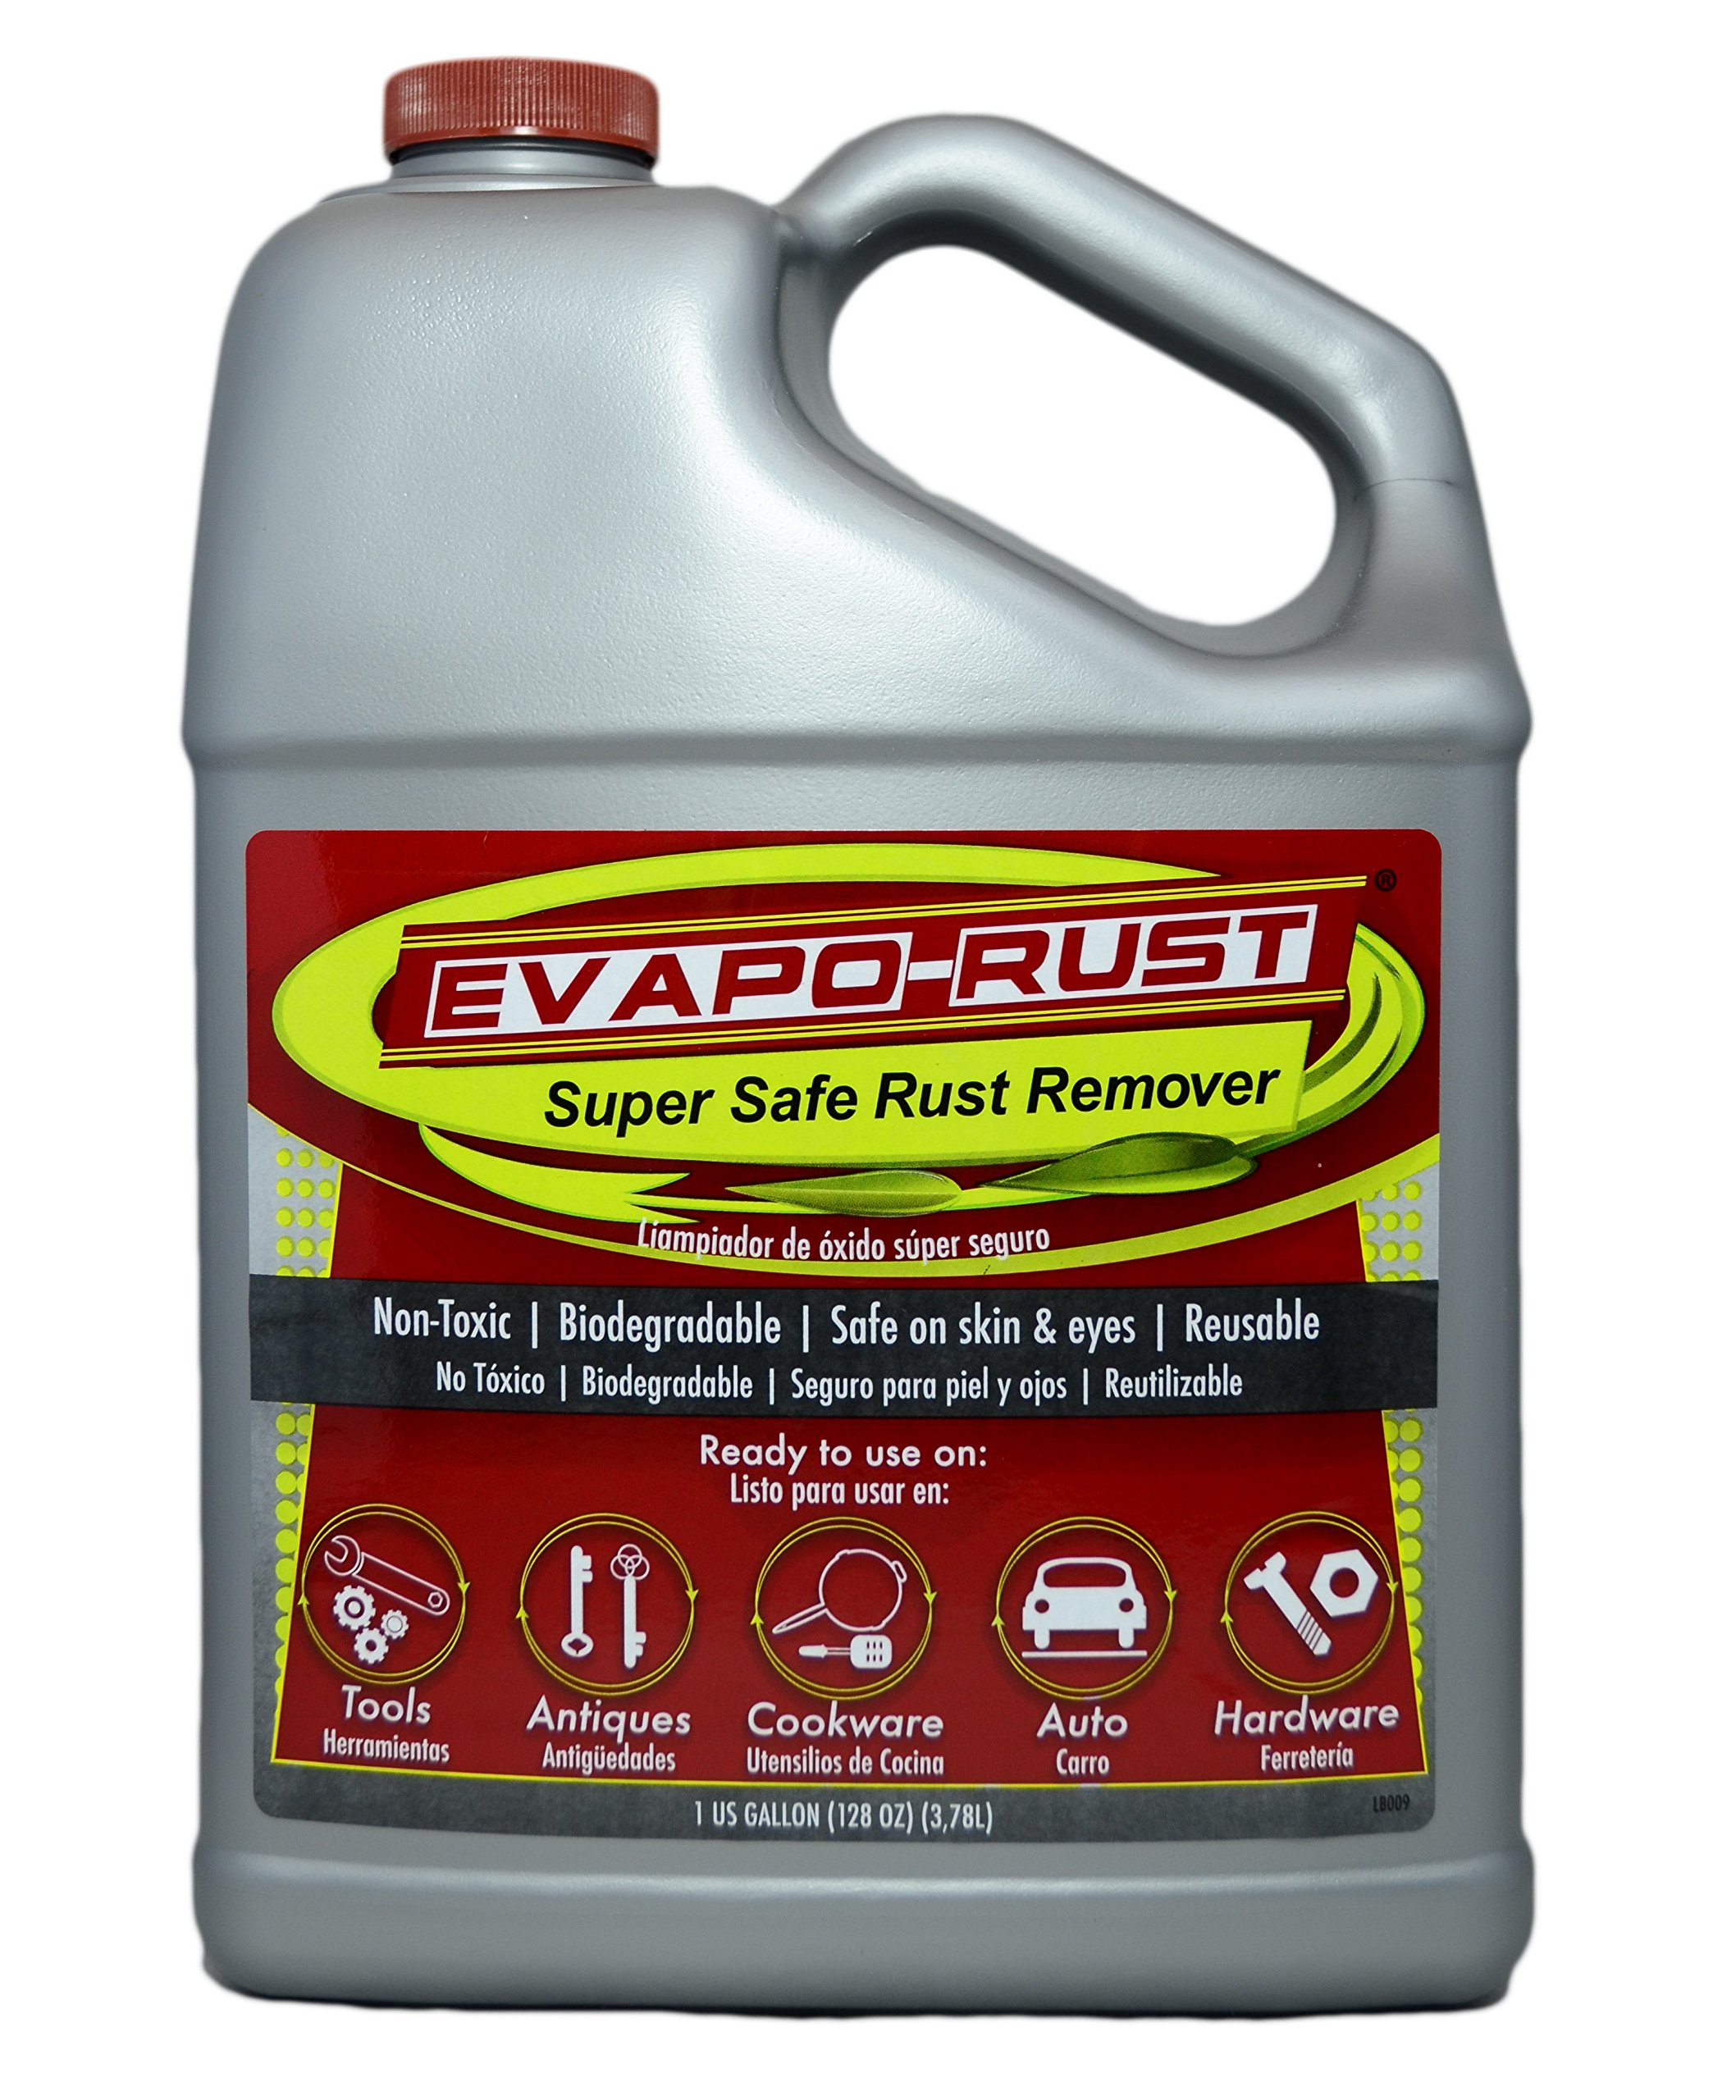 Evapo-Rust The Original Super Safe Rust Remover, contains no acids, non-toxic, biodegradable, and safe on skin - 1 Gallon by Evapo-Rust